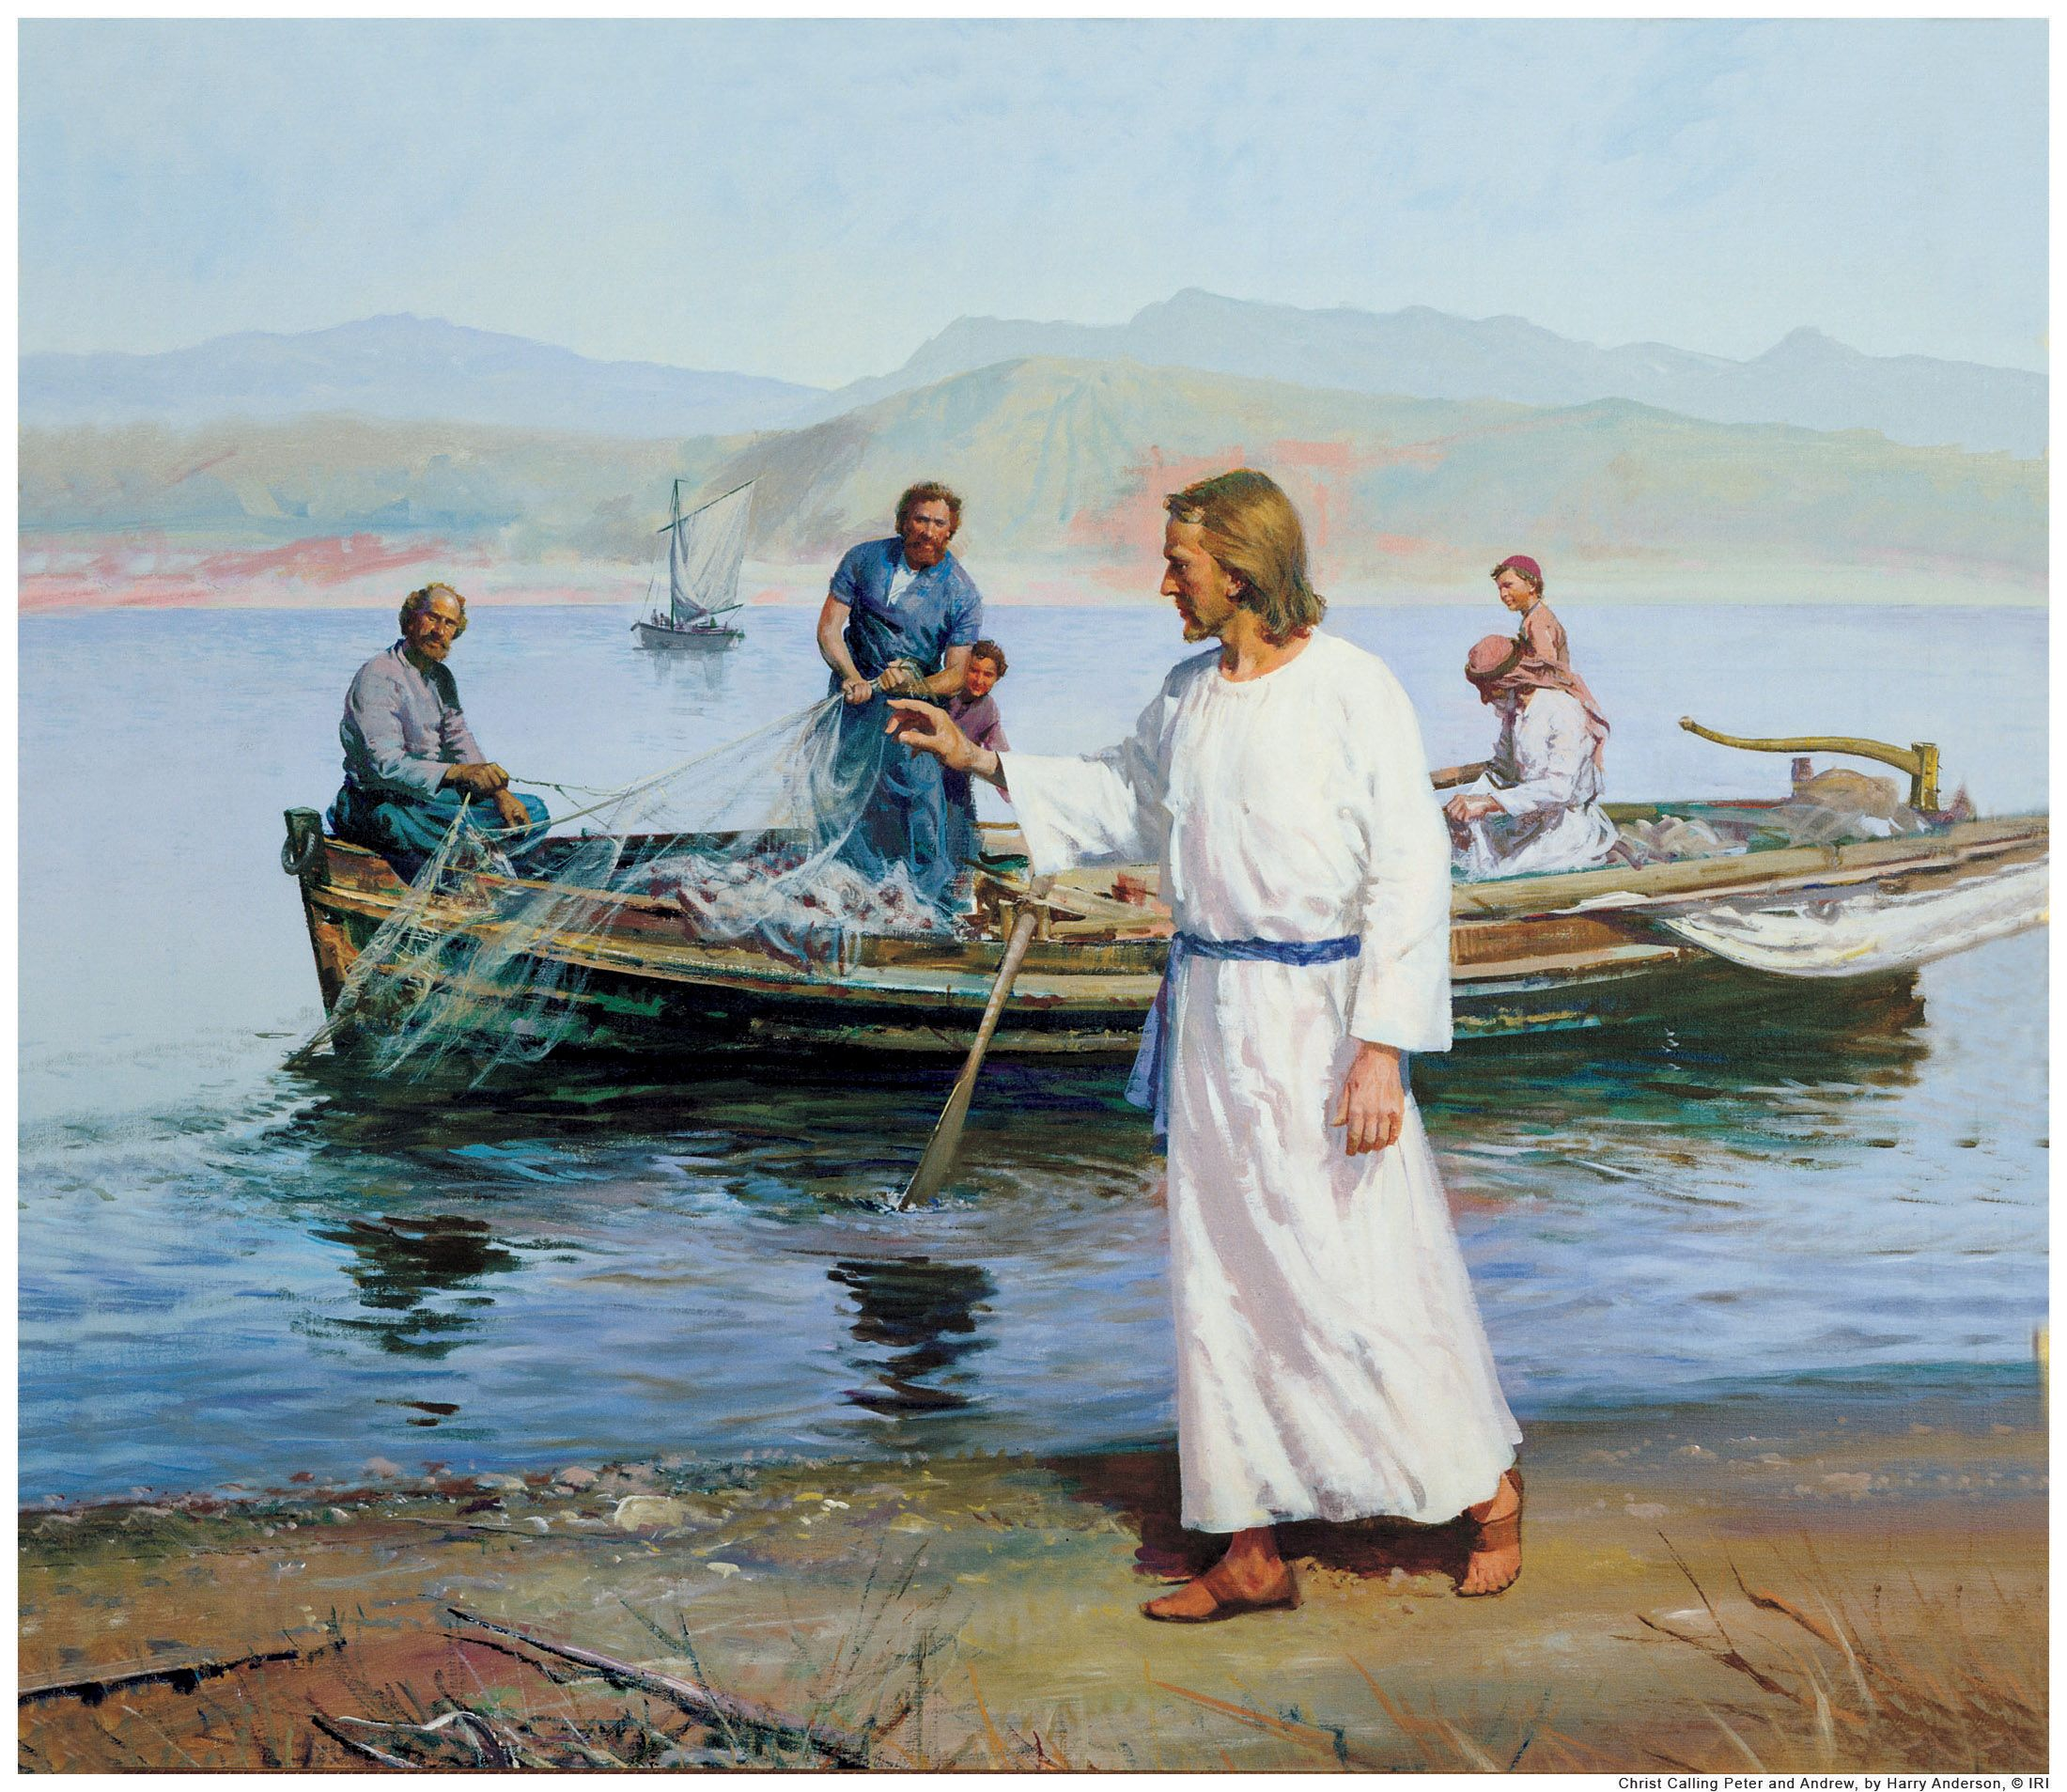 Jesus calls Simon-Peter and Andrew to follow Him; to become his ...